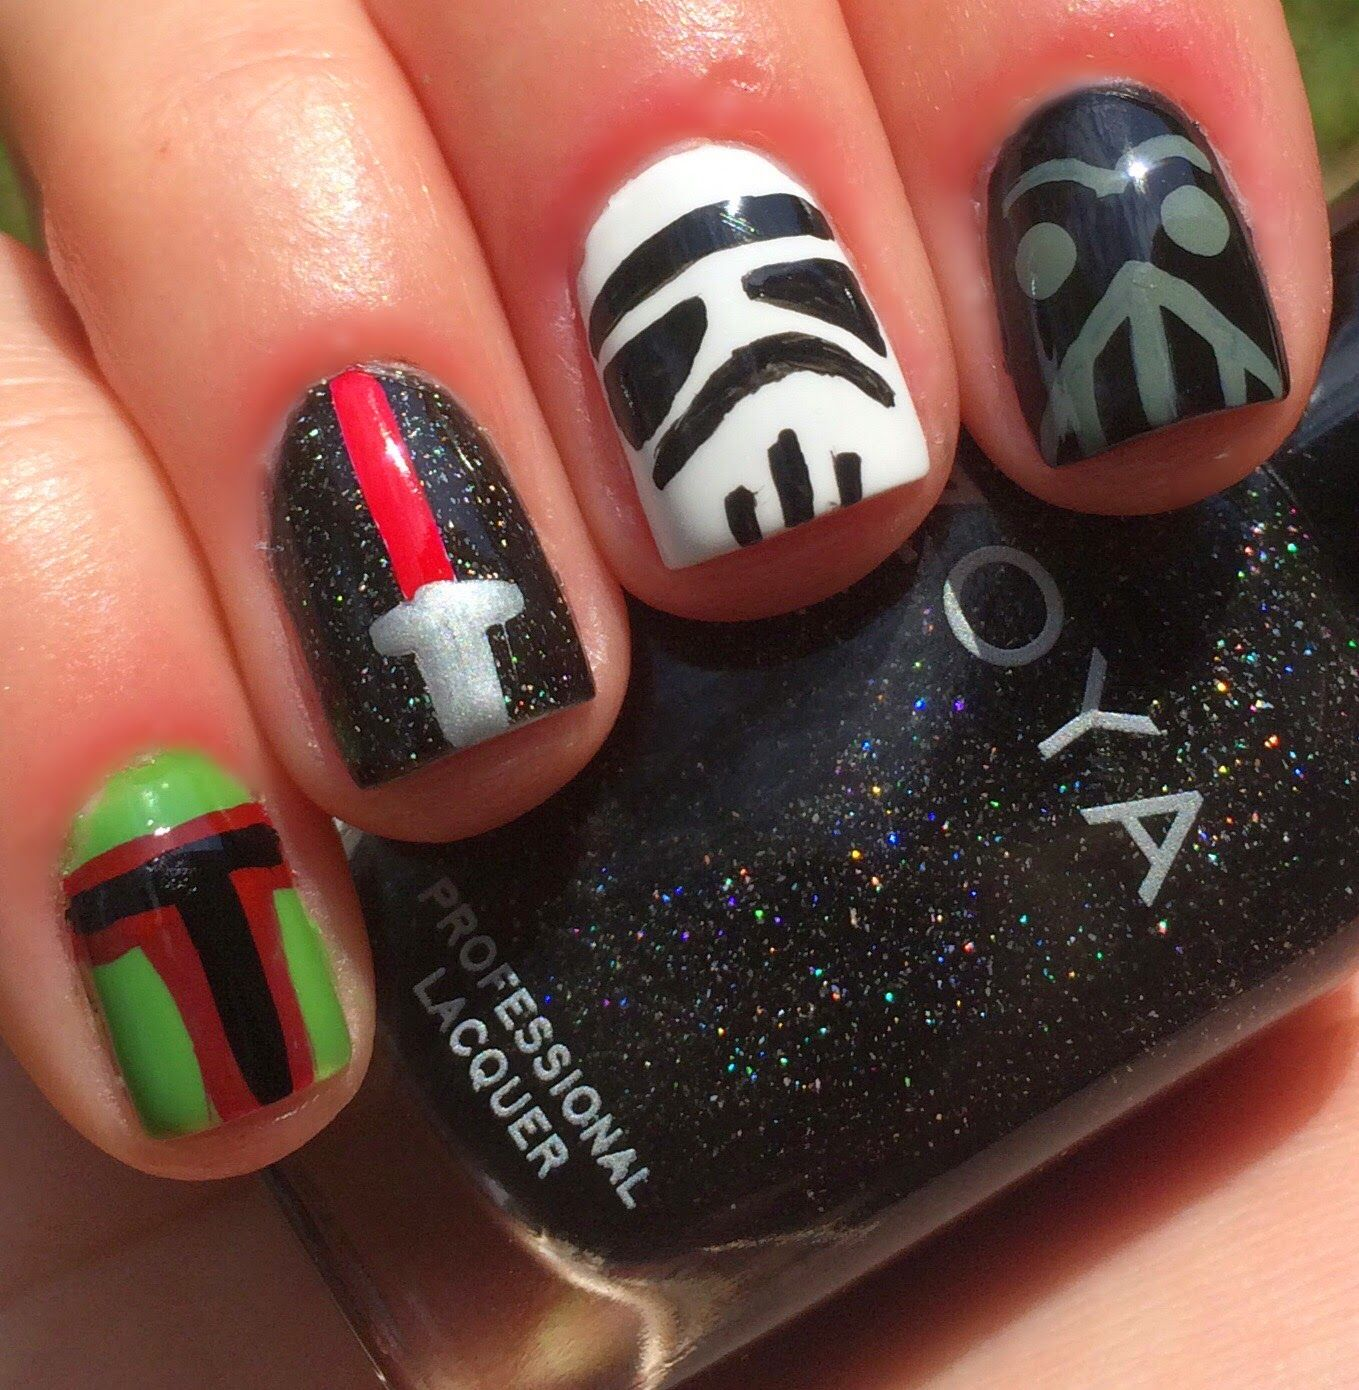 The Force Awakens With These Incredible Pieces of Star Wars Nail Art. - Top 10 Star Wars Nail Art Designs And Ideas Nail Fun